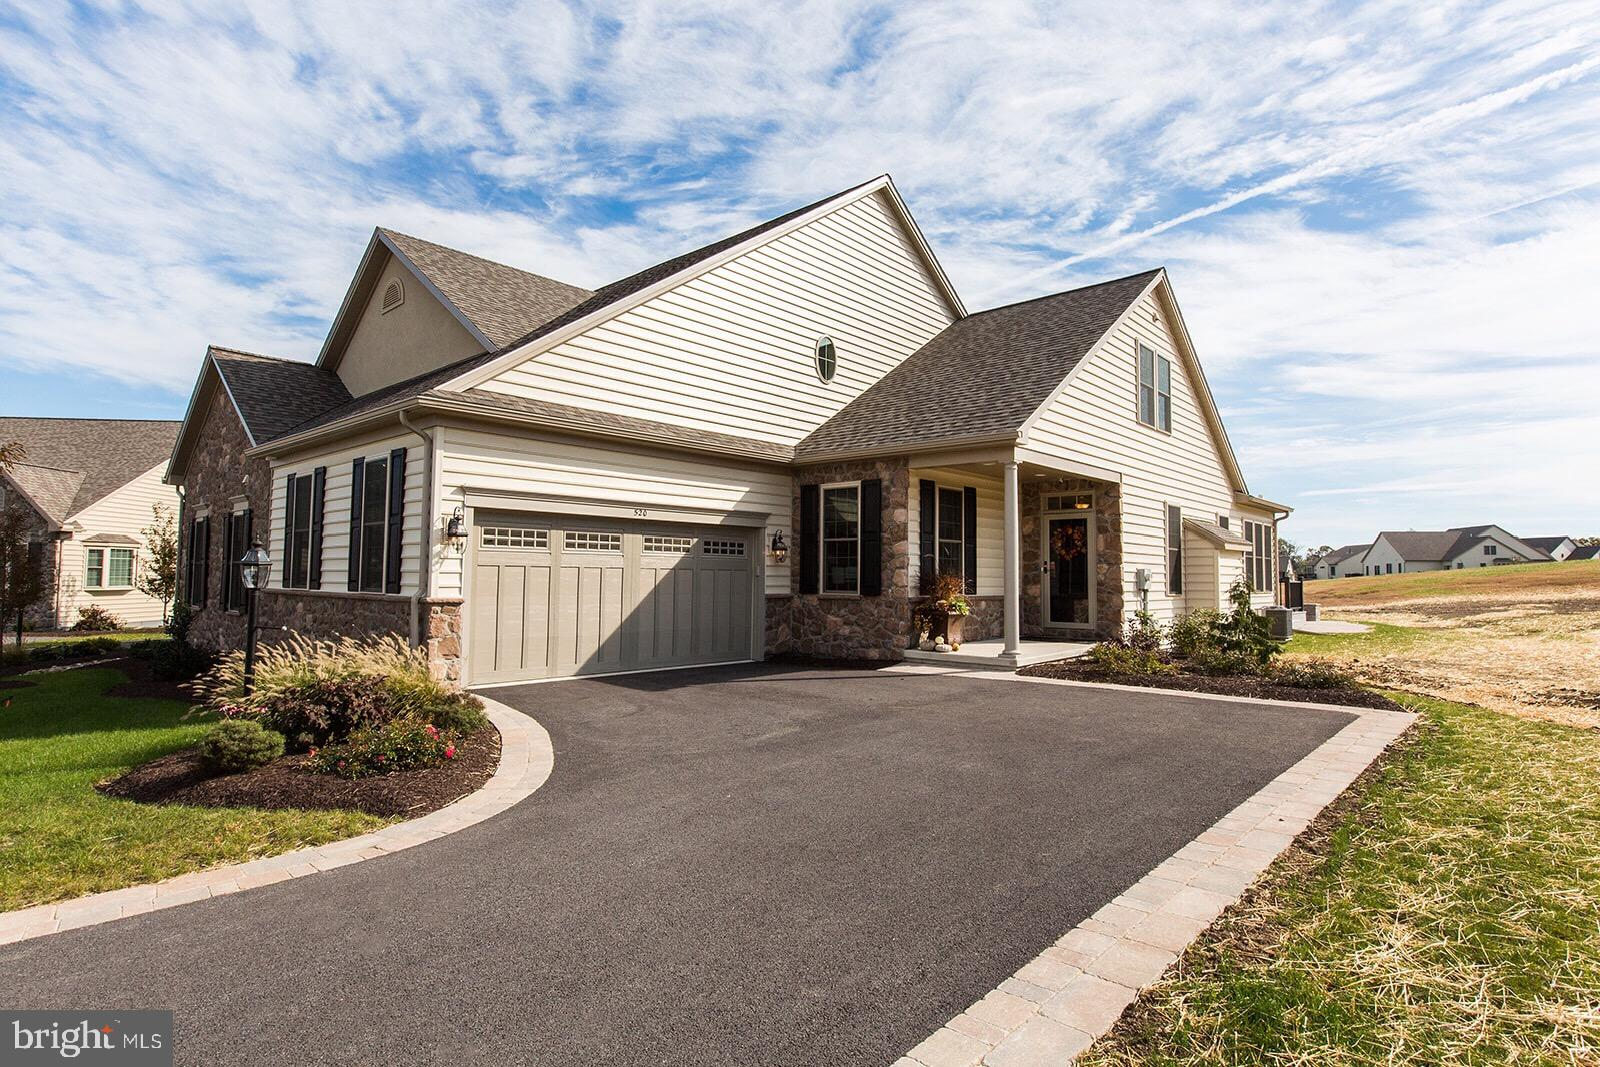 520 N IVY HILL PATH HIGHWAY, COCHRANVILLE, PA 19330